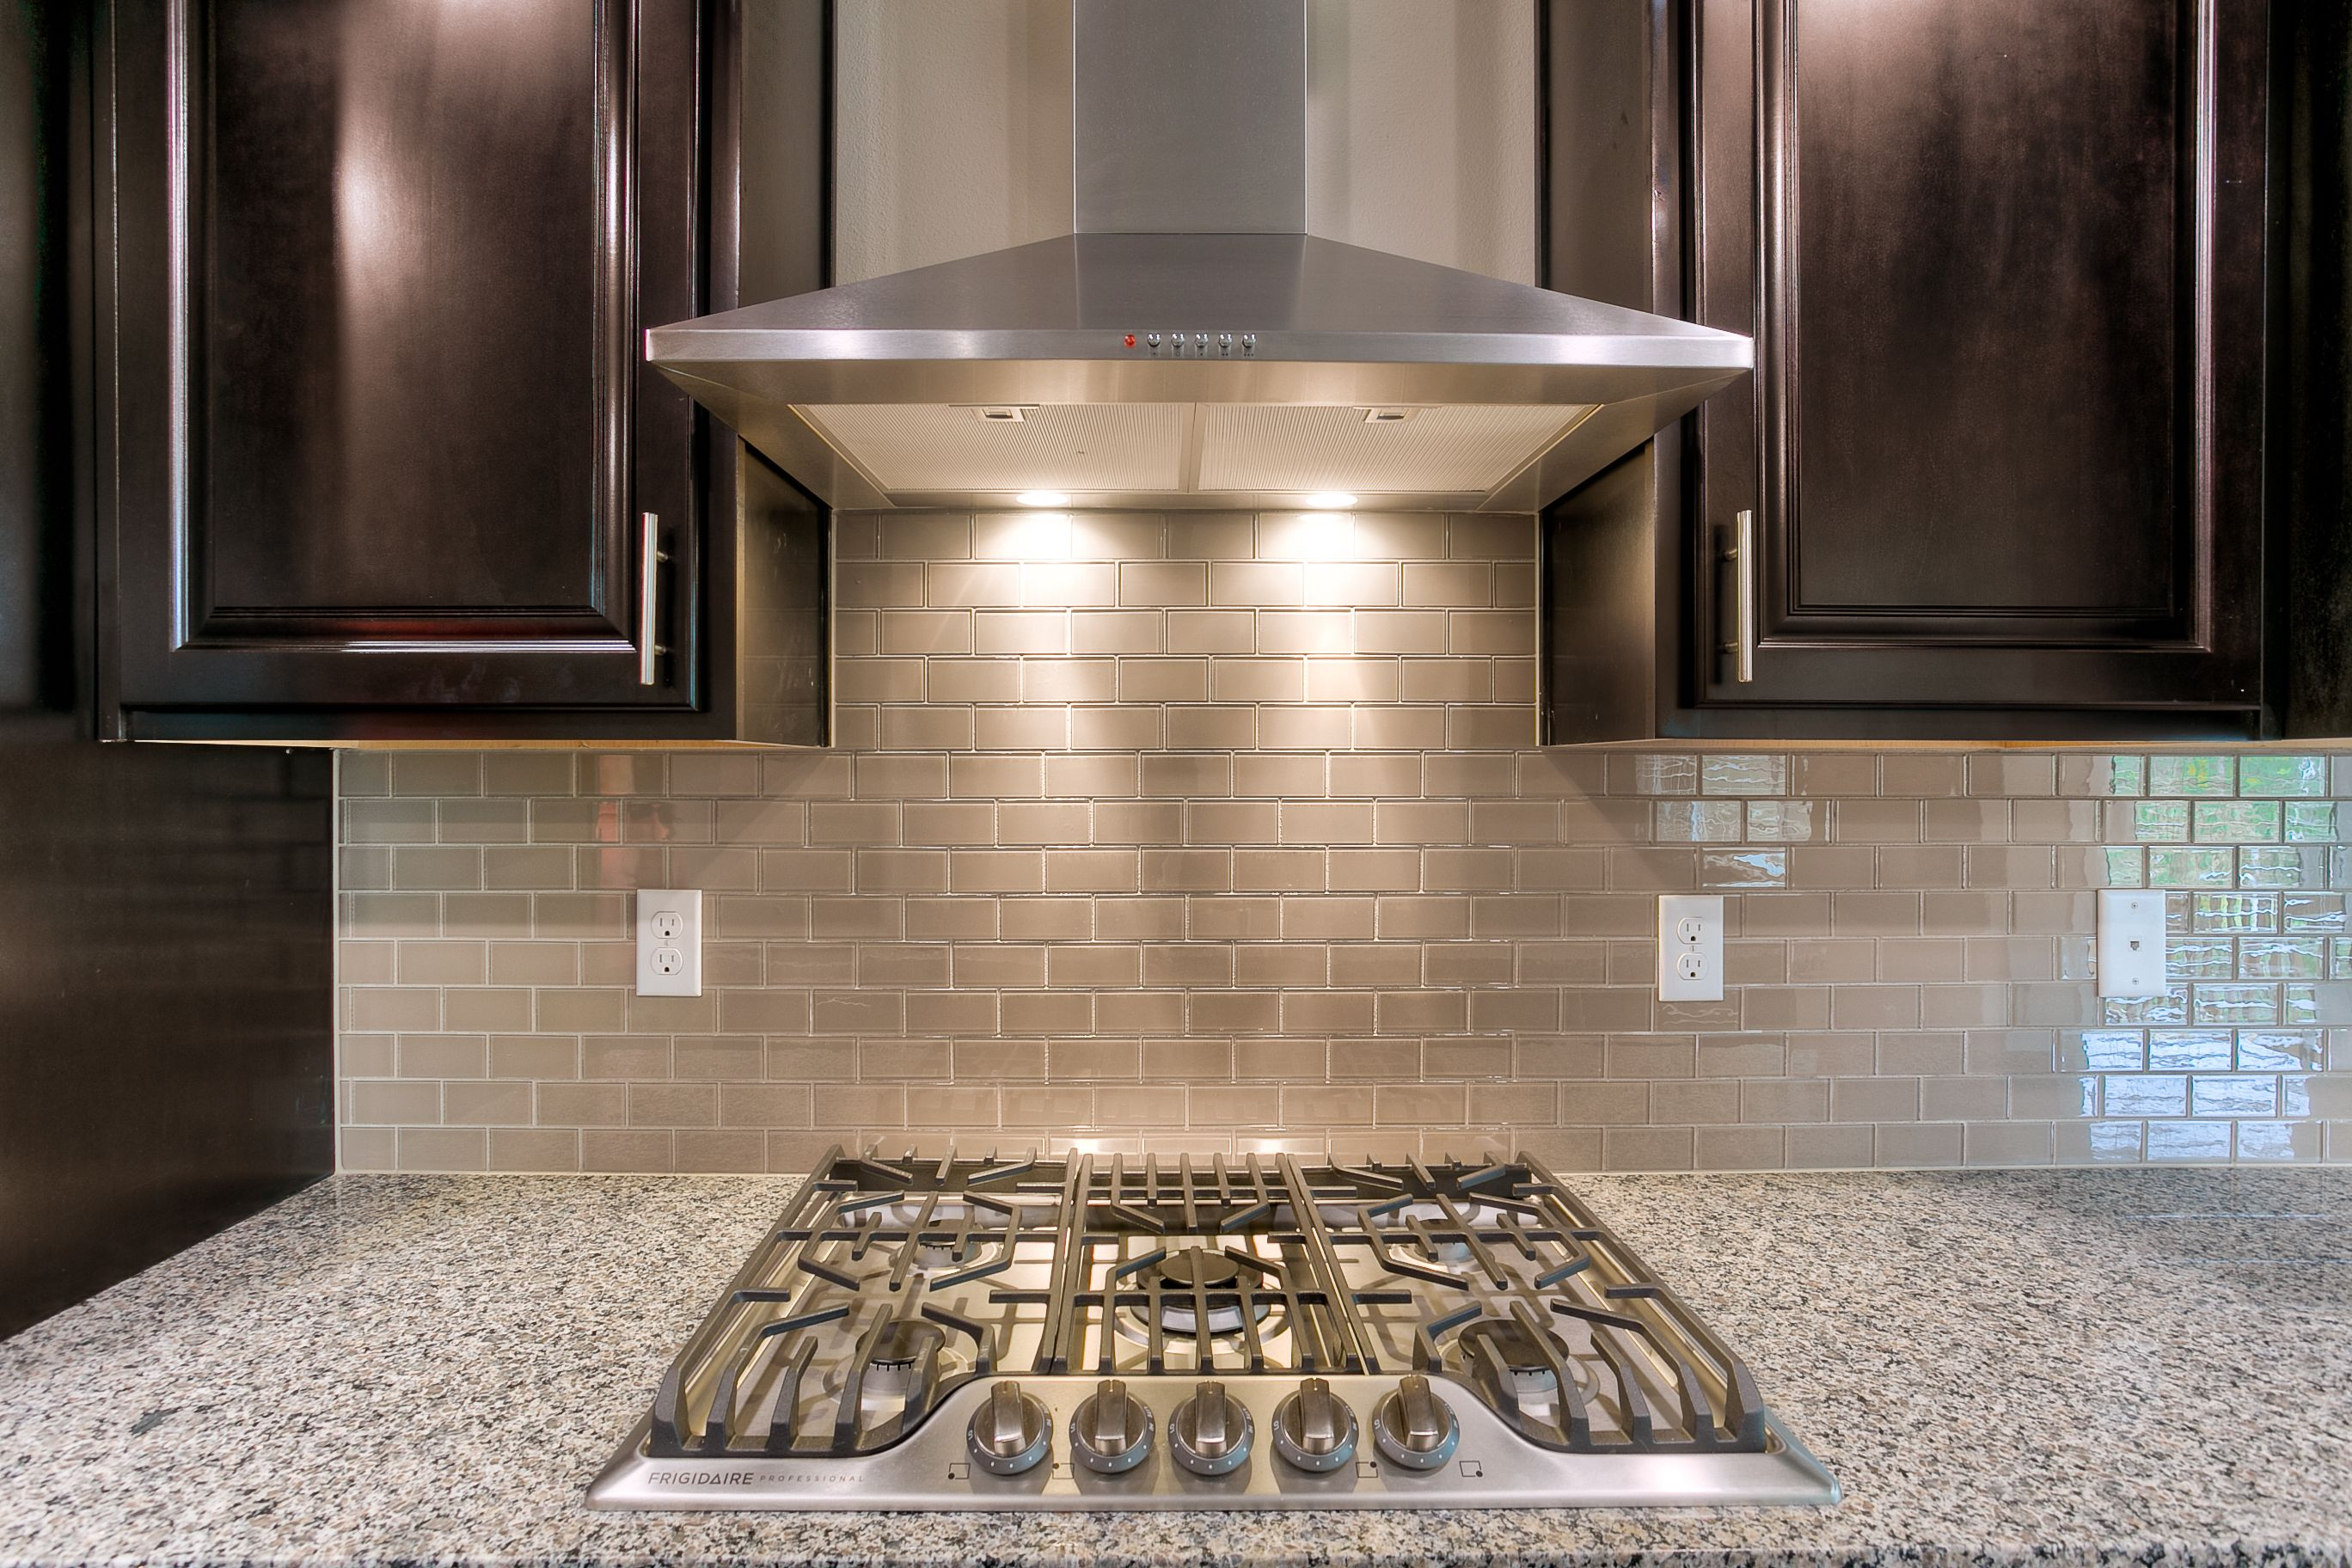 Subway tile is on point in this stunning kitchen by lennar seattle subway tile is on point in this stunning kitchen by lennar seattle dailygadgetfo Gallery